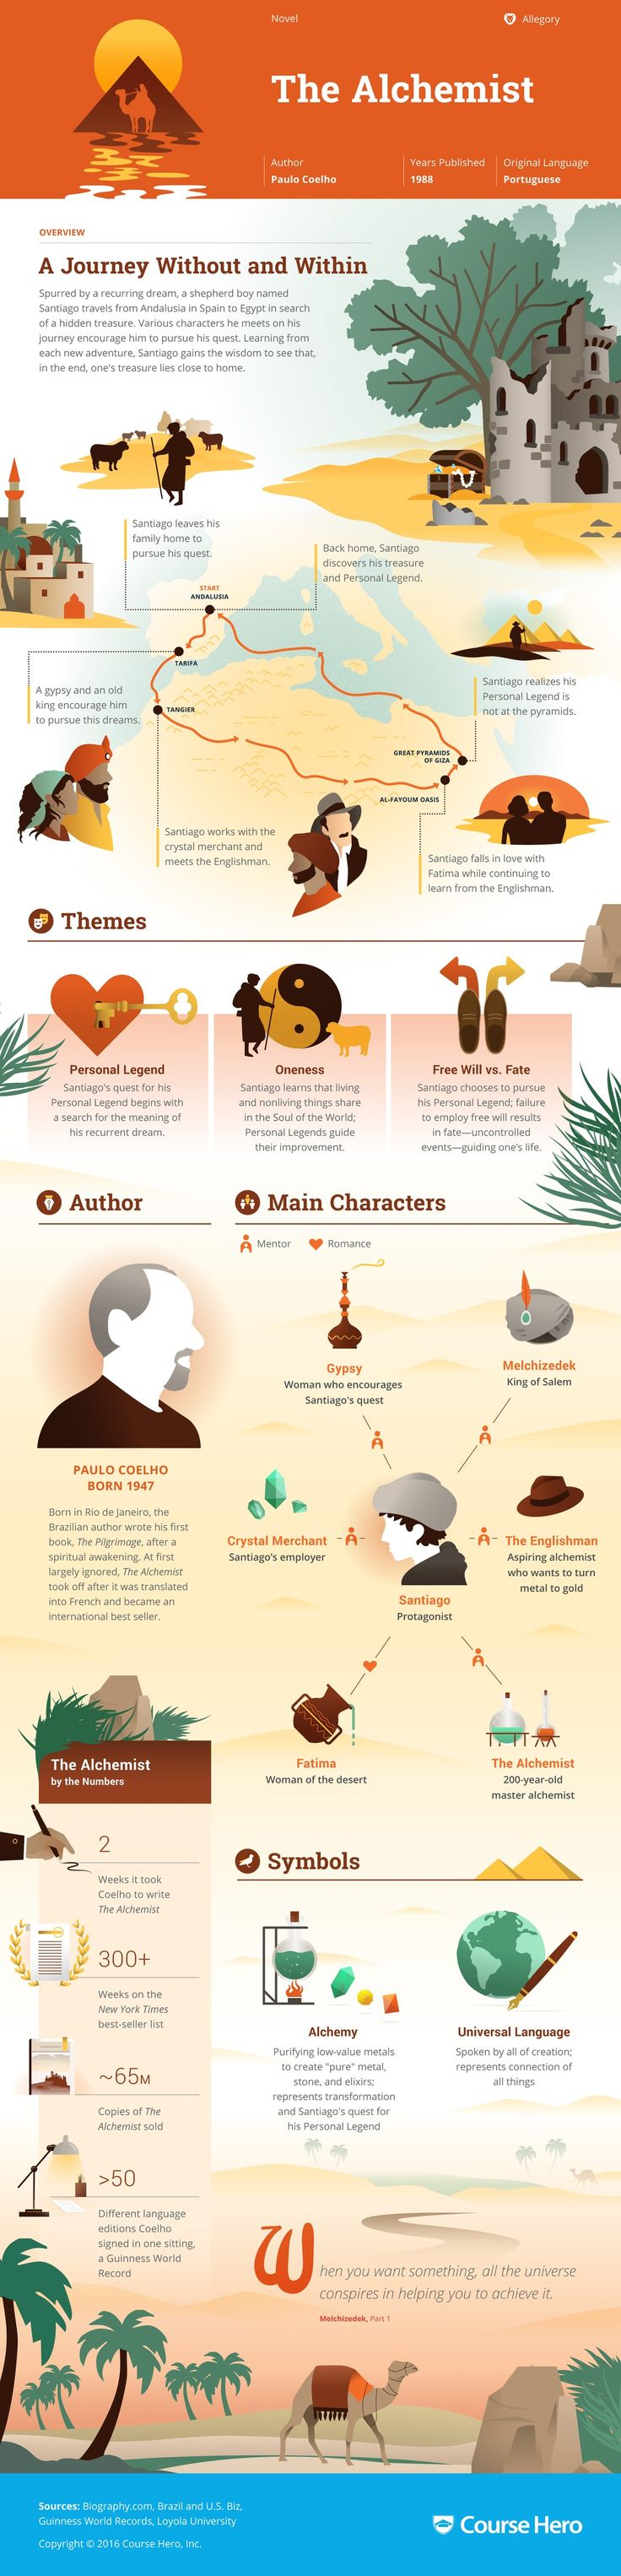 best ideas about the alchemist the alchemist study guide for paulo coelho s the alchemist including part summary character analysis and more learn all about the alchemist ask questions